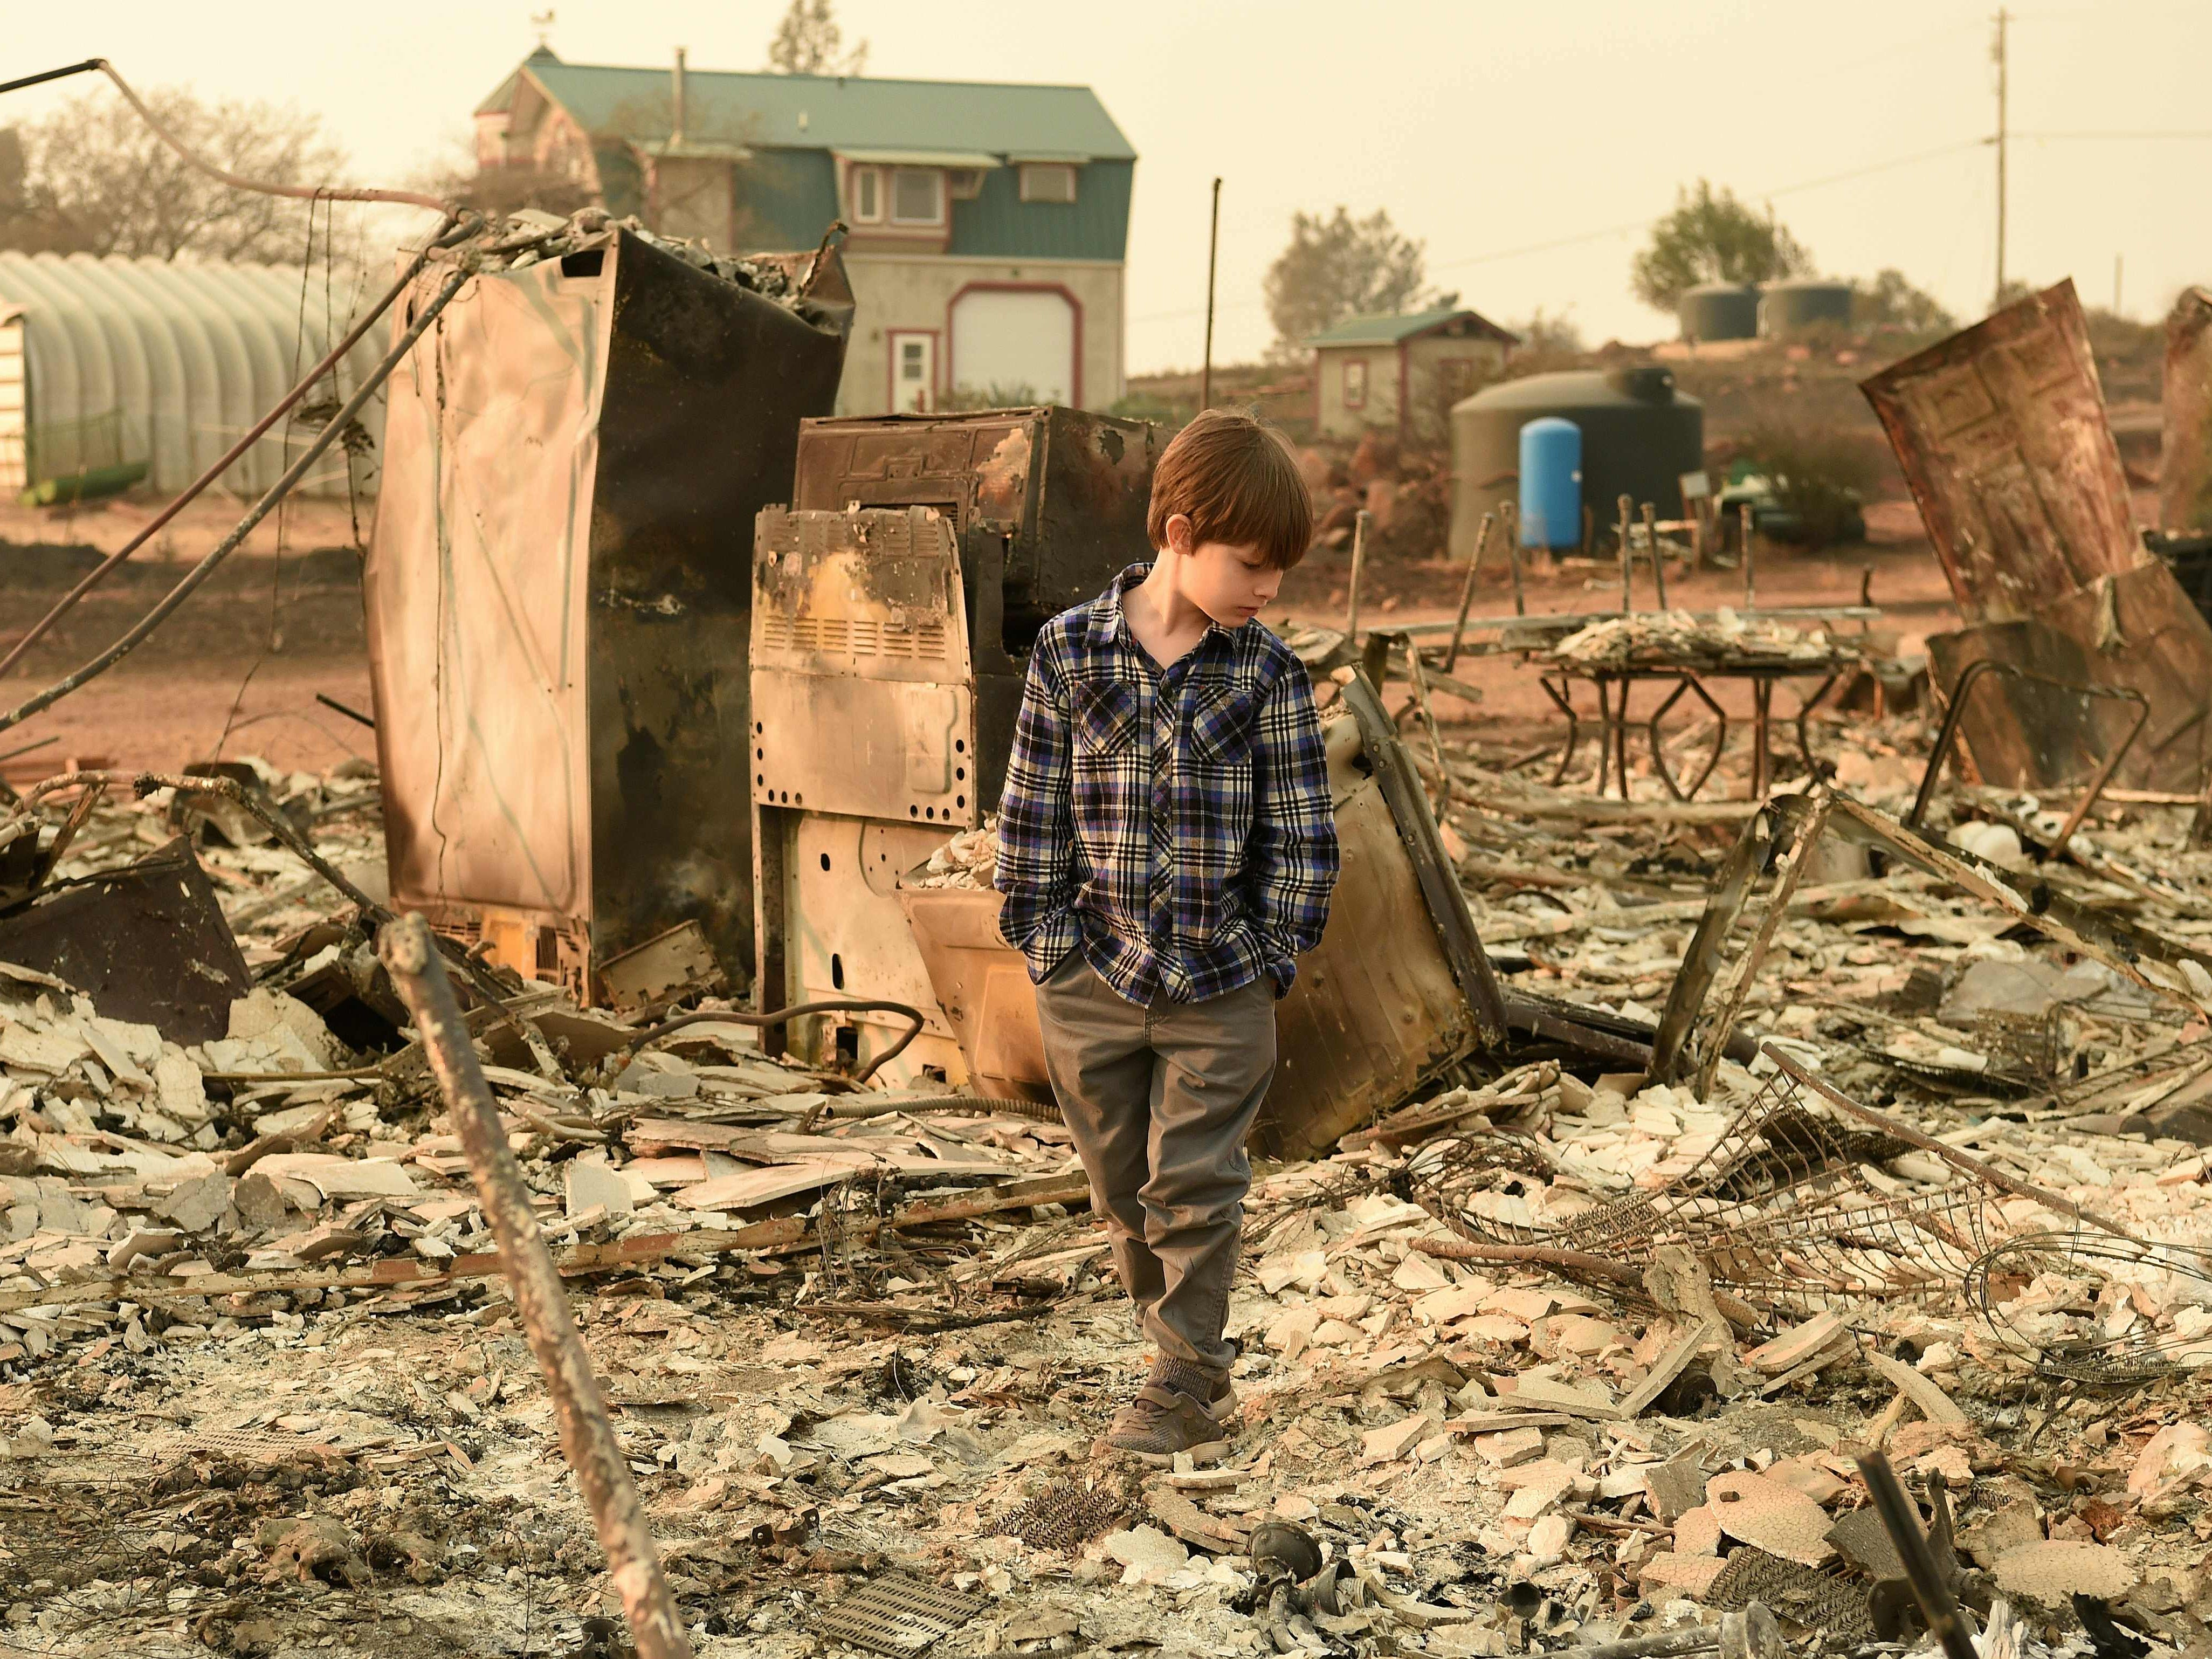 Jacob Saylors, 11, walks through the burned remains of his home in Paradise, Calif. on Nov. 18, 2018. The family lost a home in the same spot to a fire 10 years earlier.